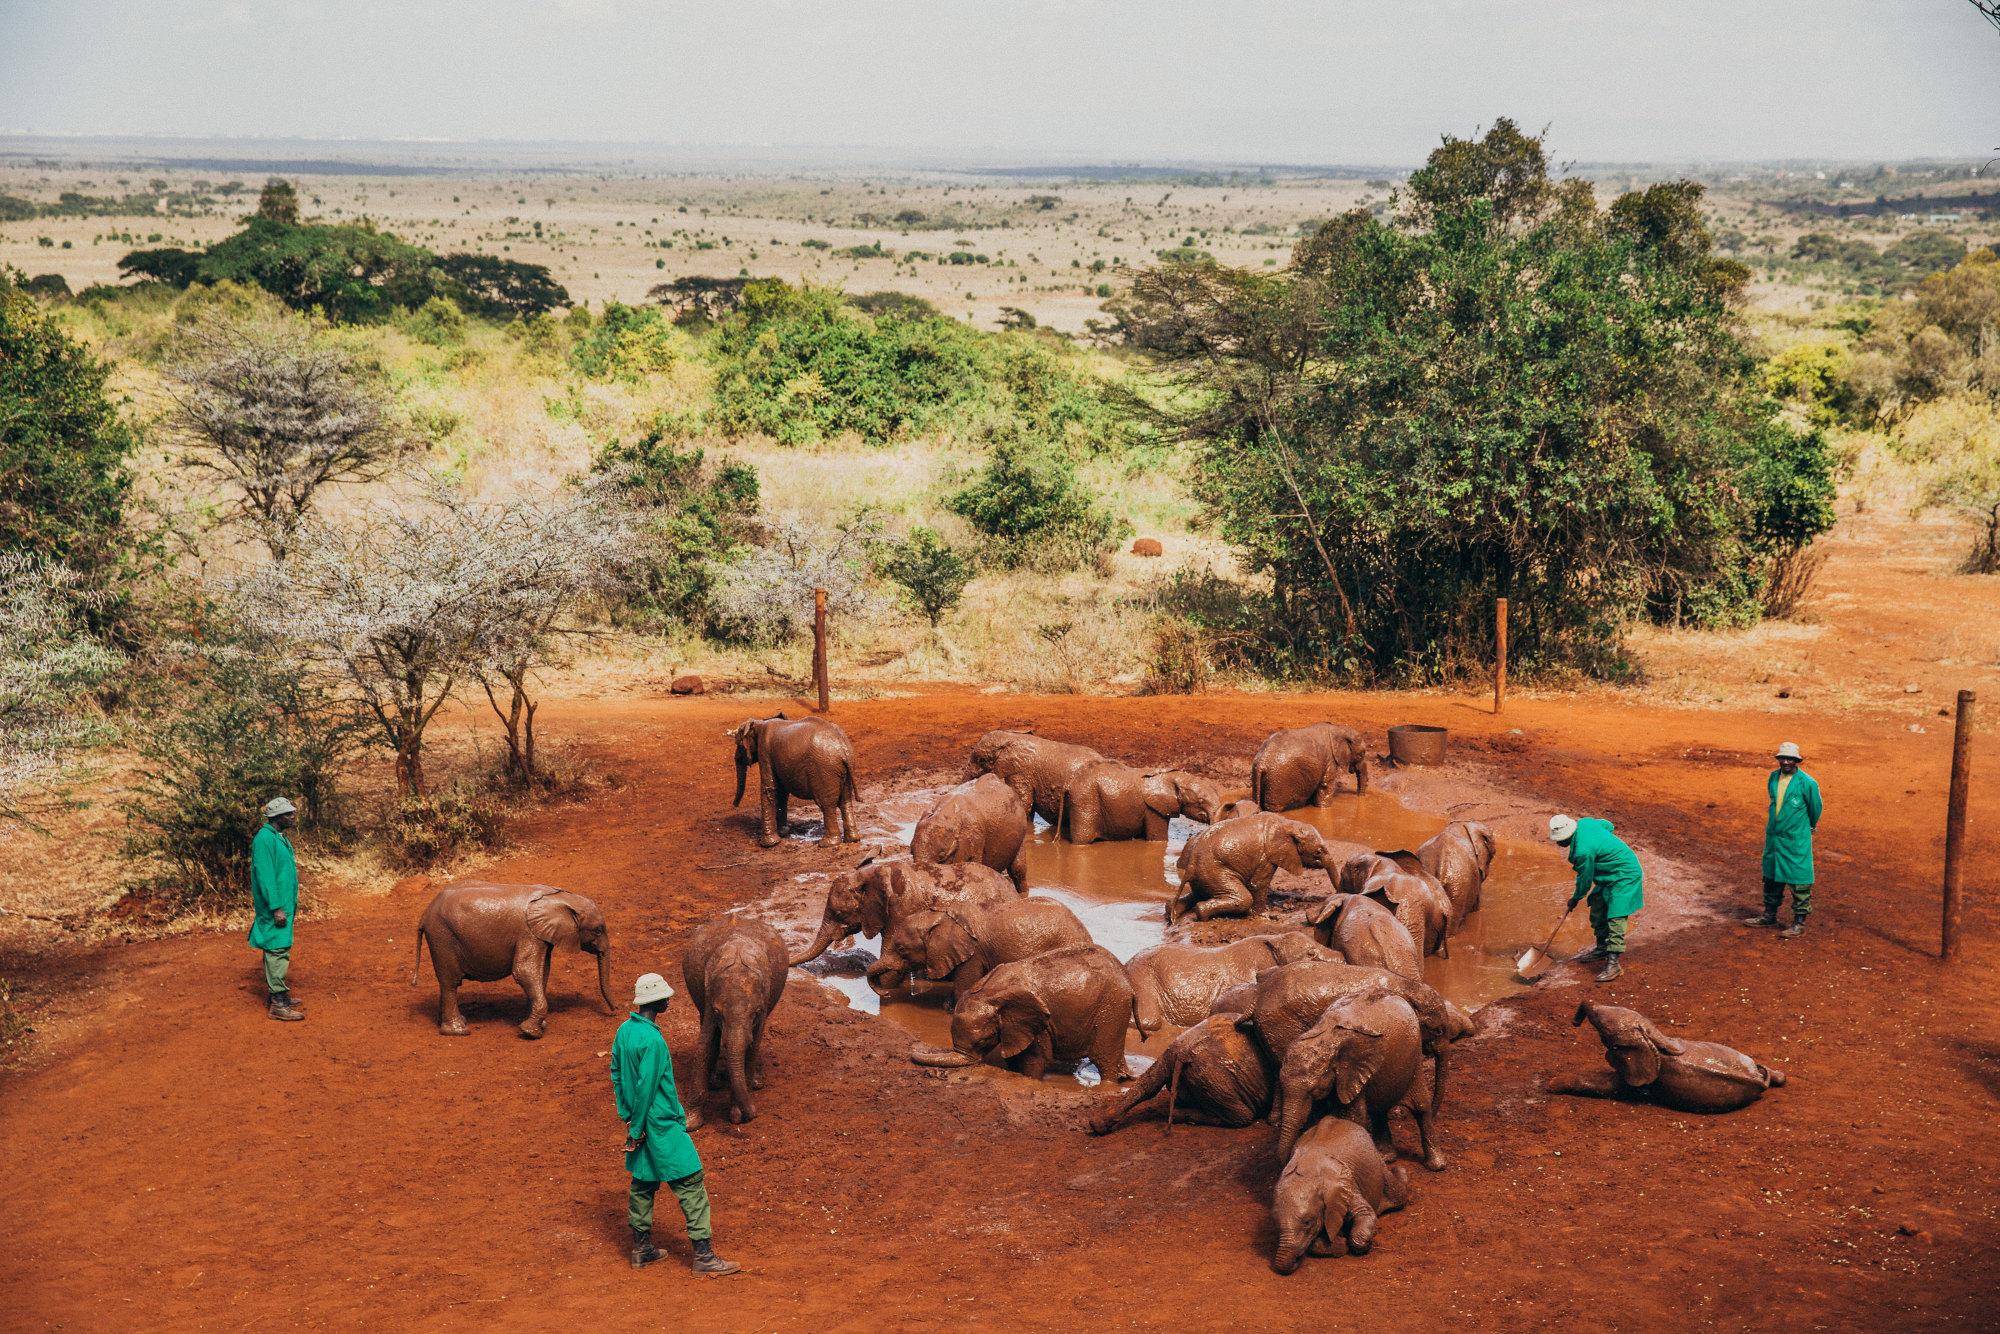 Elephants and their keepers